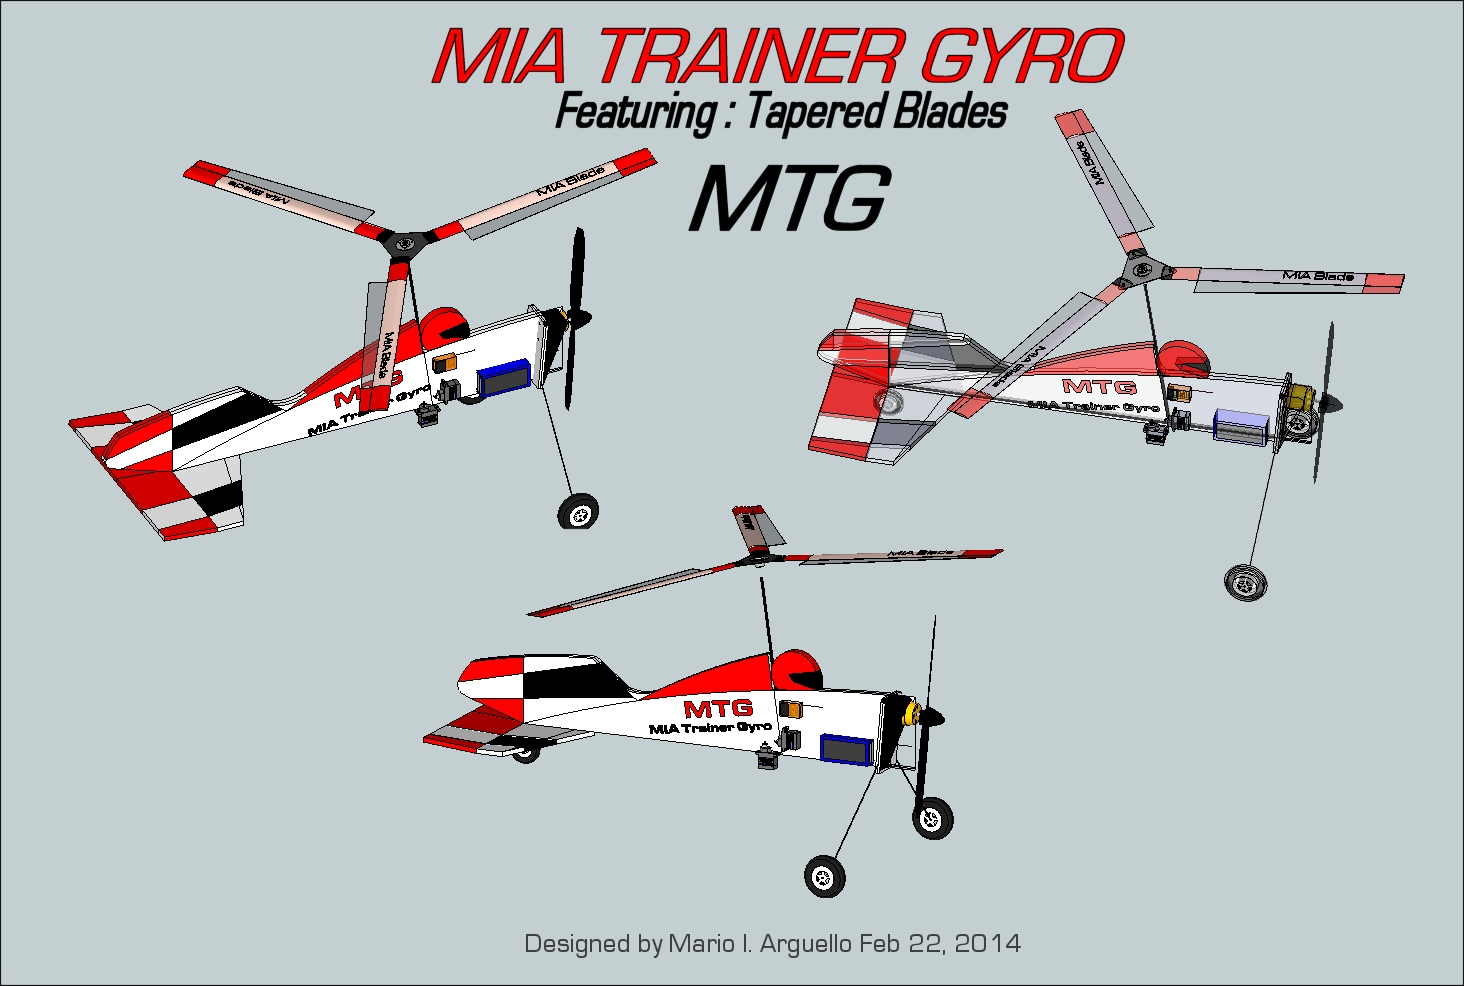 Click image for larger version  Name:MIA MTG RC AUTOGYRO.jpg Views:78 Size:272.7 KB ID:1972543